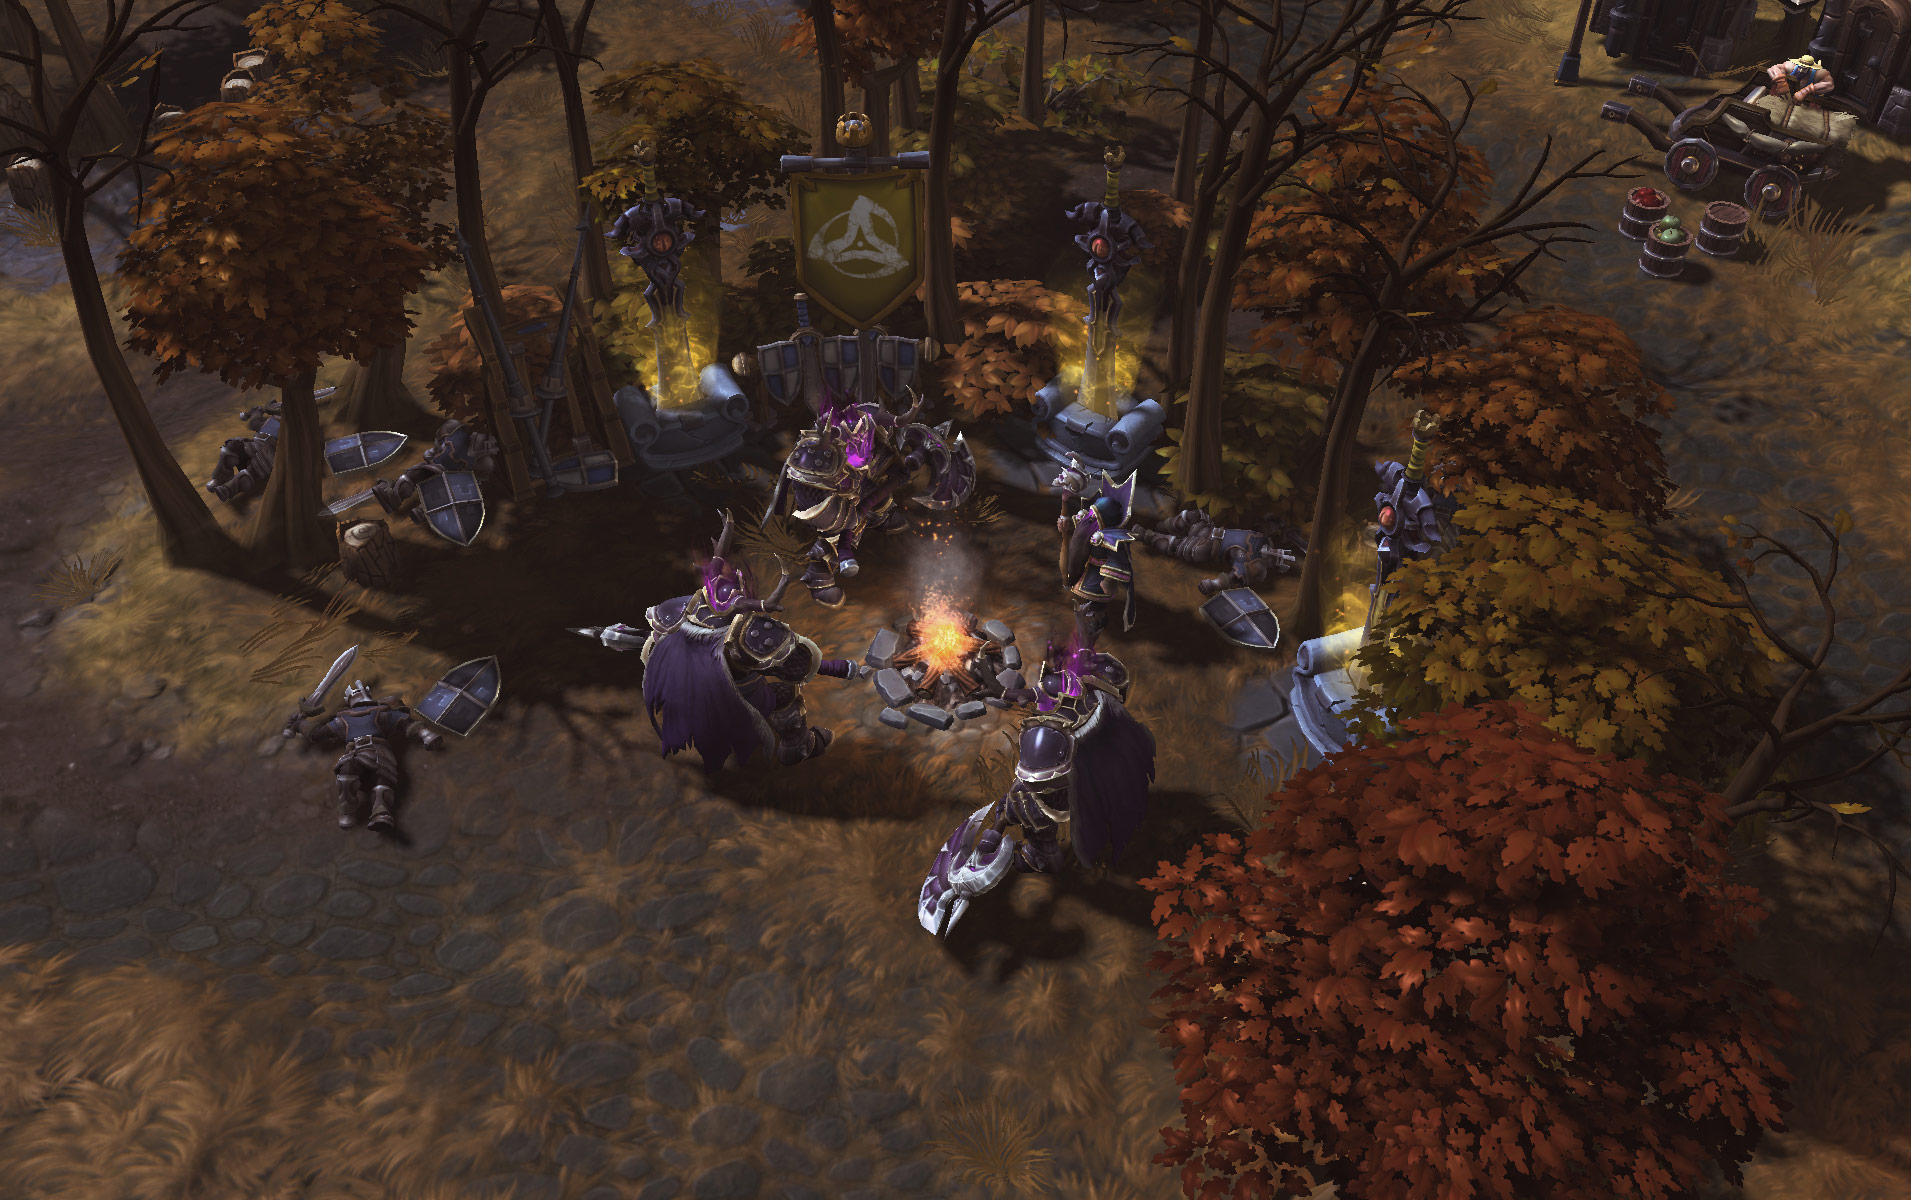 Heroes Of The Storm: Universes Collide In First Gameplay Trailer And Screenshots #29616